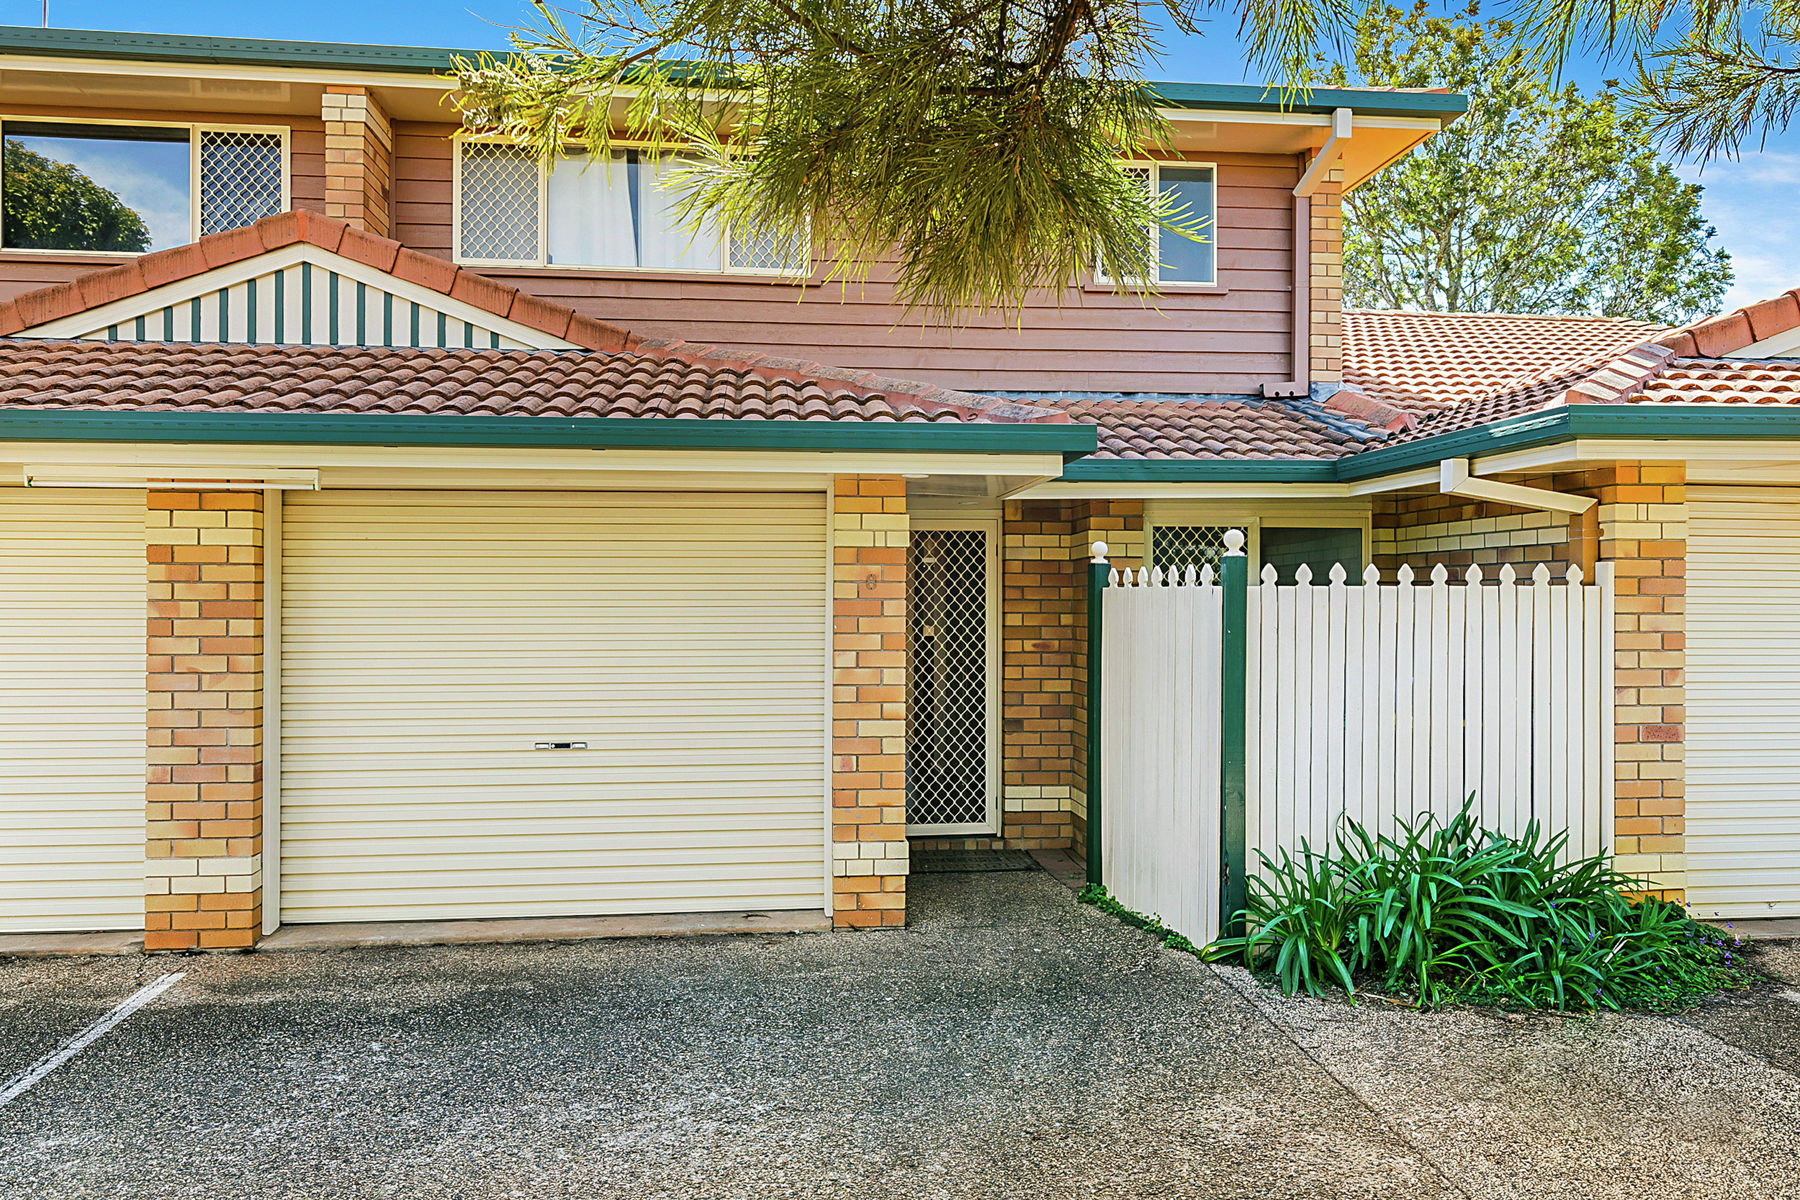 Property in Newtown - Offers Over $255,000